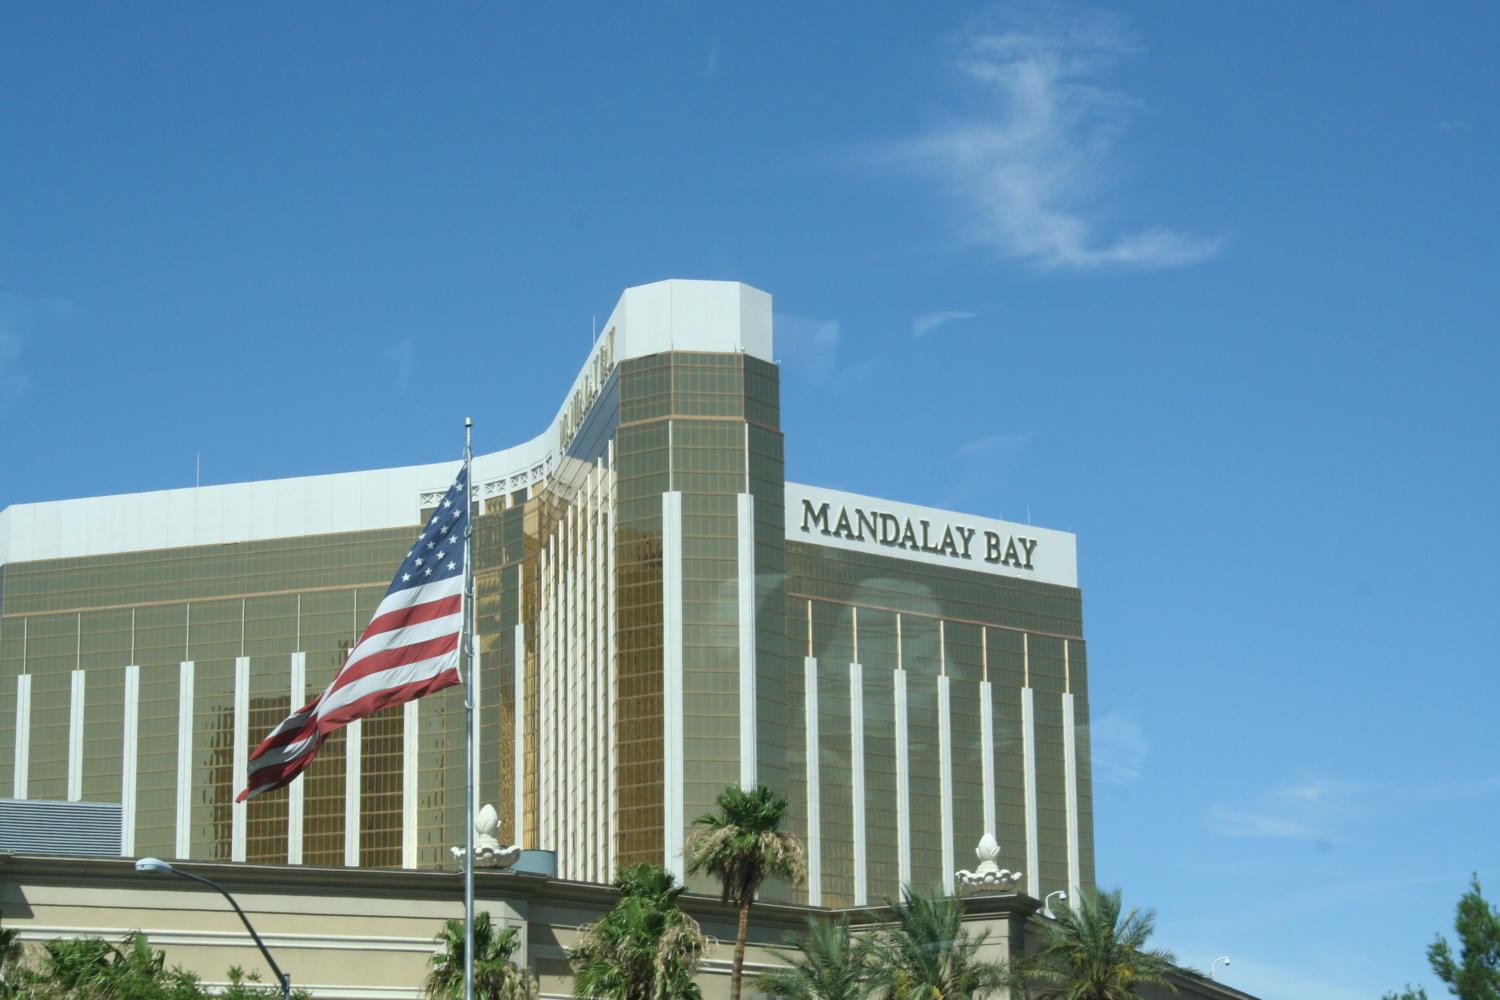 The shooter broke two windows from his room in the Mandalay Bay Hotel, where he was able to shoot at concert attenders down below.